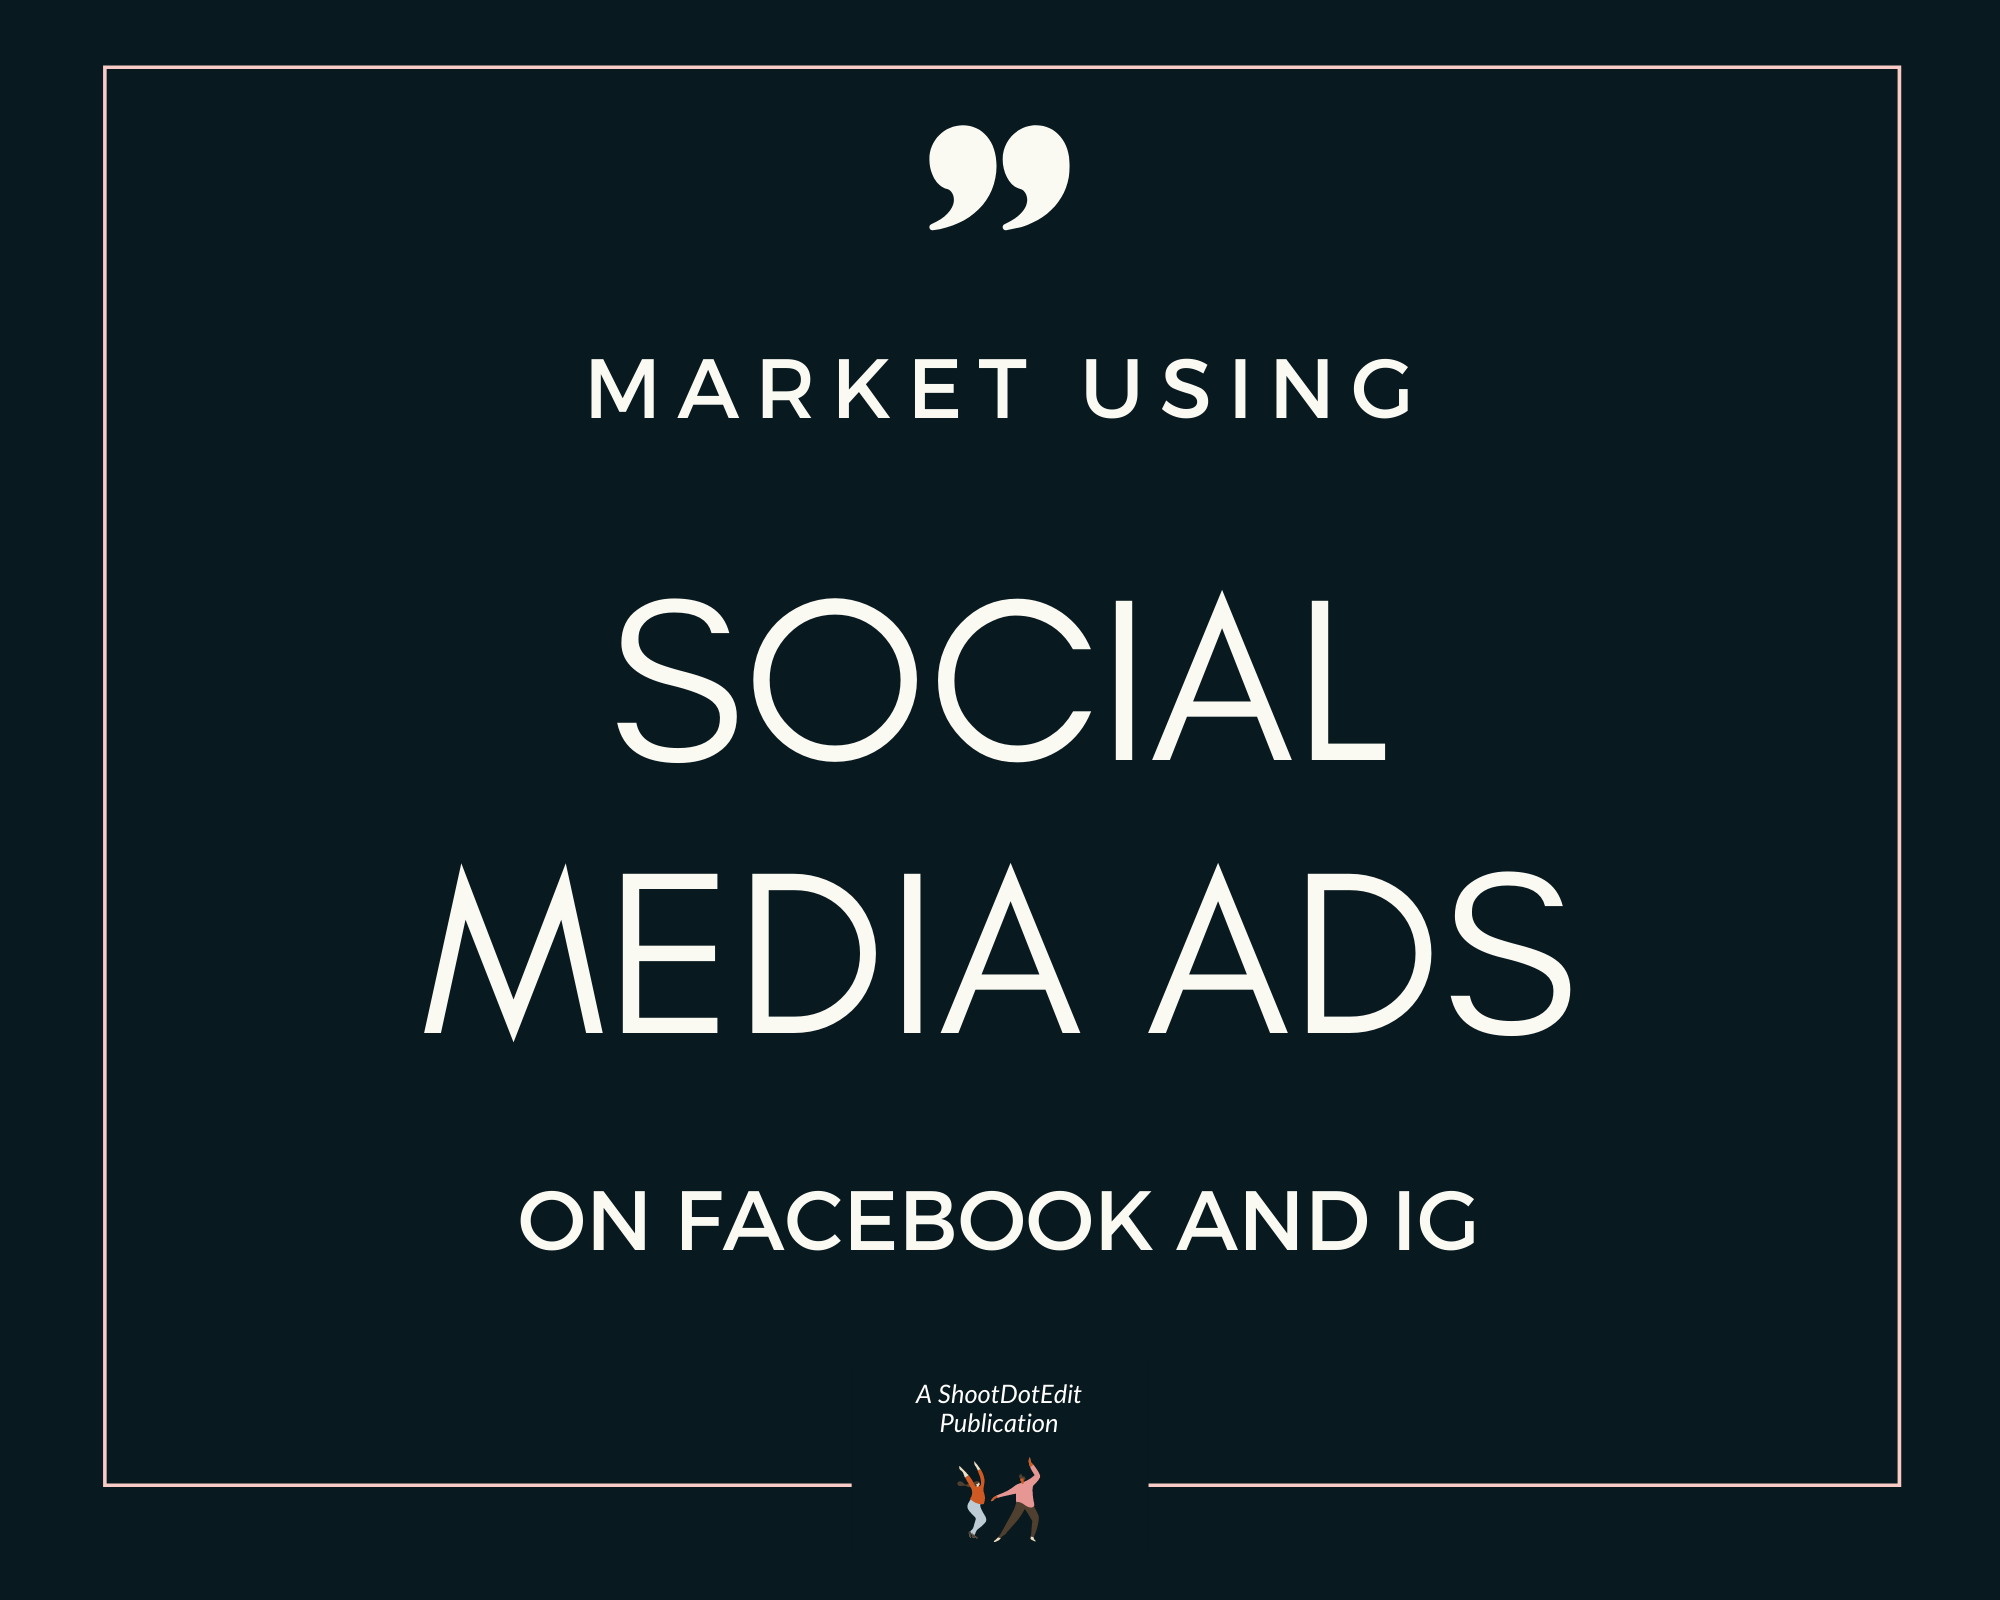 Infographics stating market using social media ads on Facebook and IG